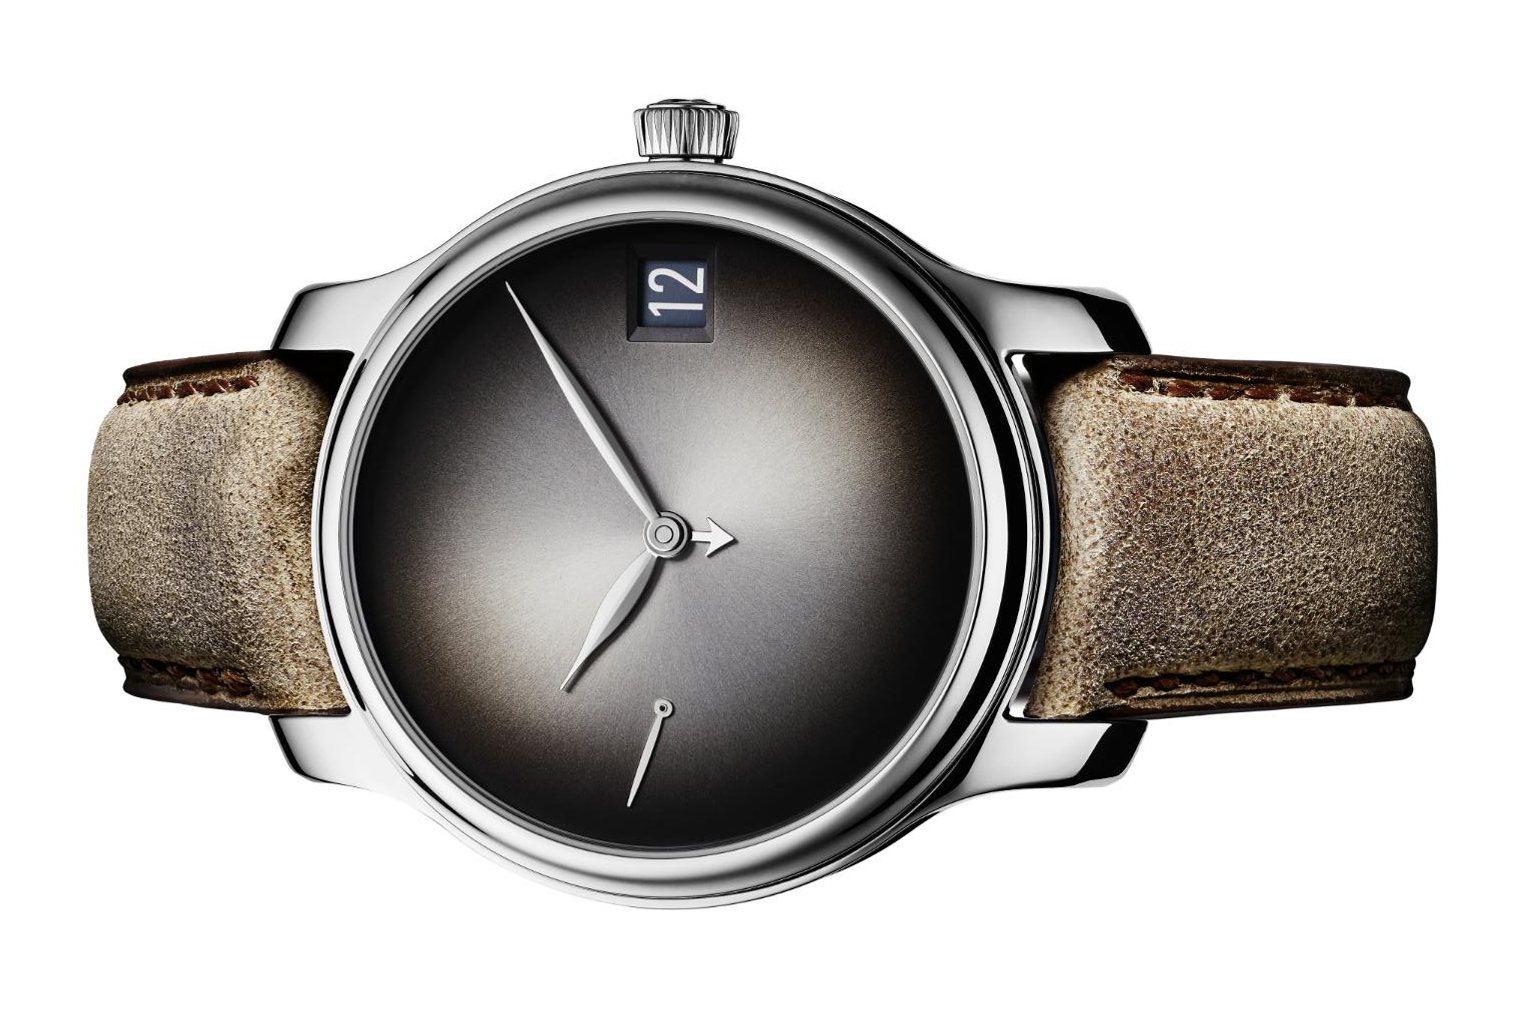 Đồng Hồ H. Moser & Cie Endeavour Perpetual Calendar 1341-0208 Limited 10